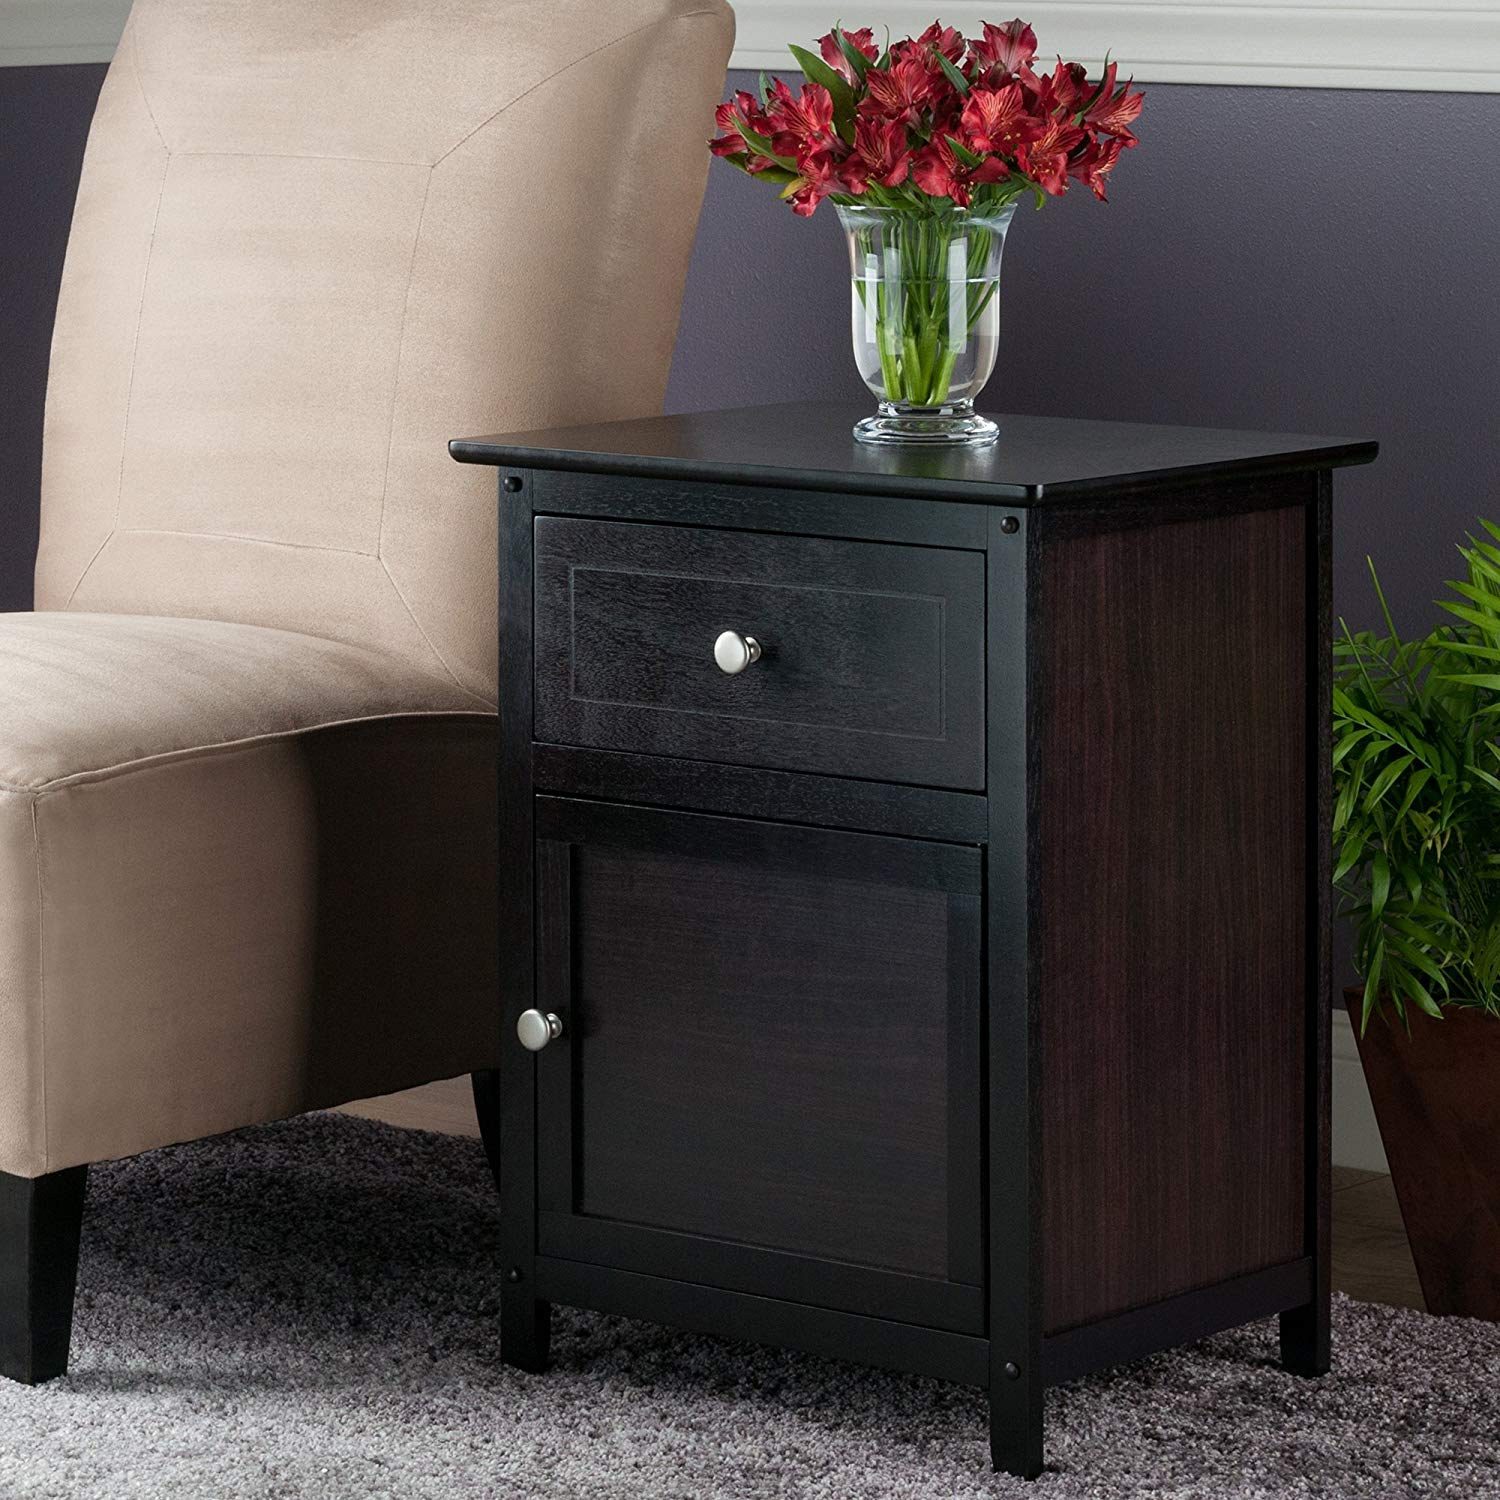 Winsome 92815 Eugene Accent Table 18.9 inches Espresso